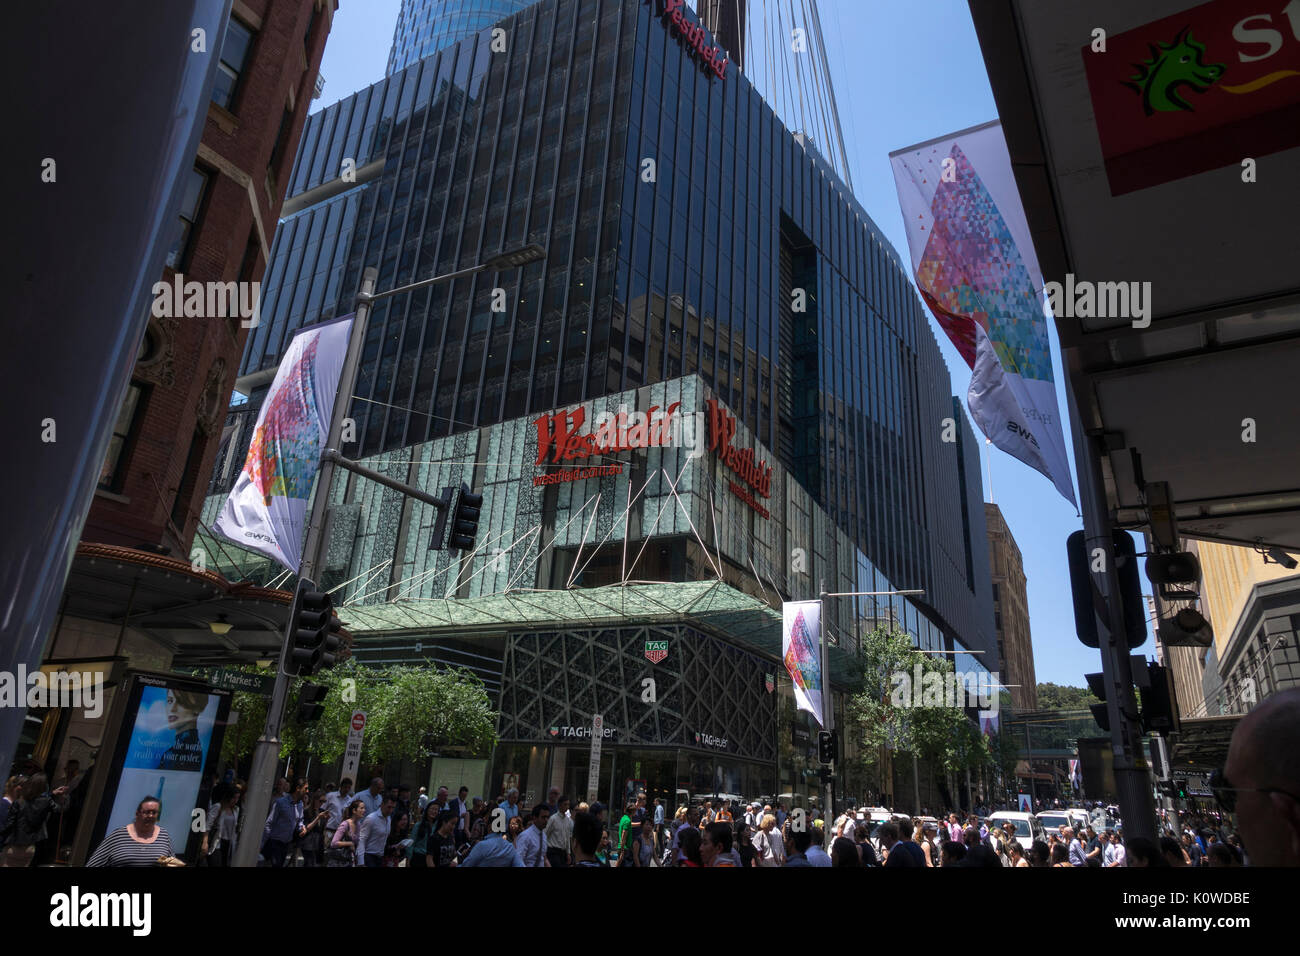 Pedestrians Cross The Street In Front Of Westfield Sydney A Shopping Centre Mall Under The Sydney Tower Eye Australia - Stock Image